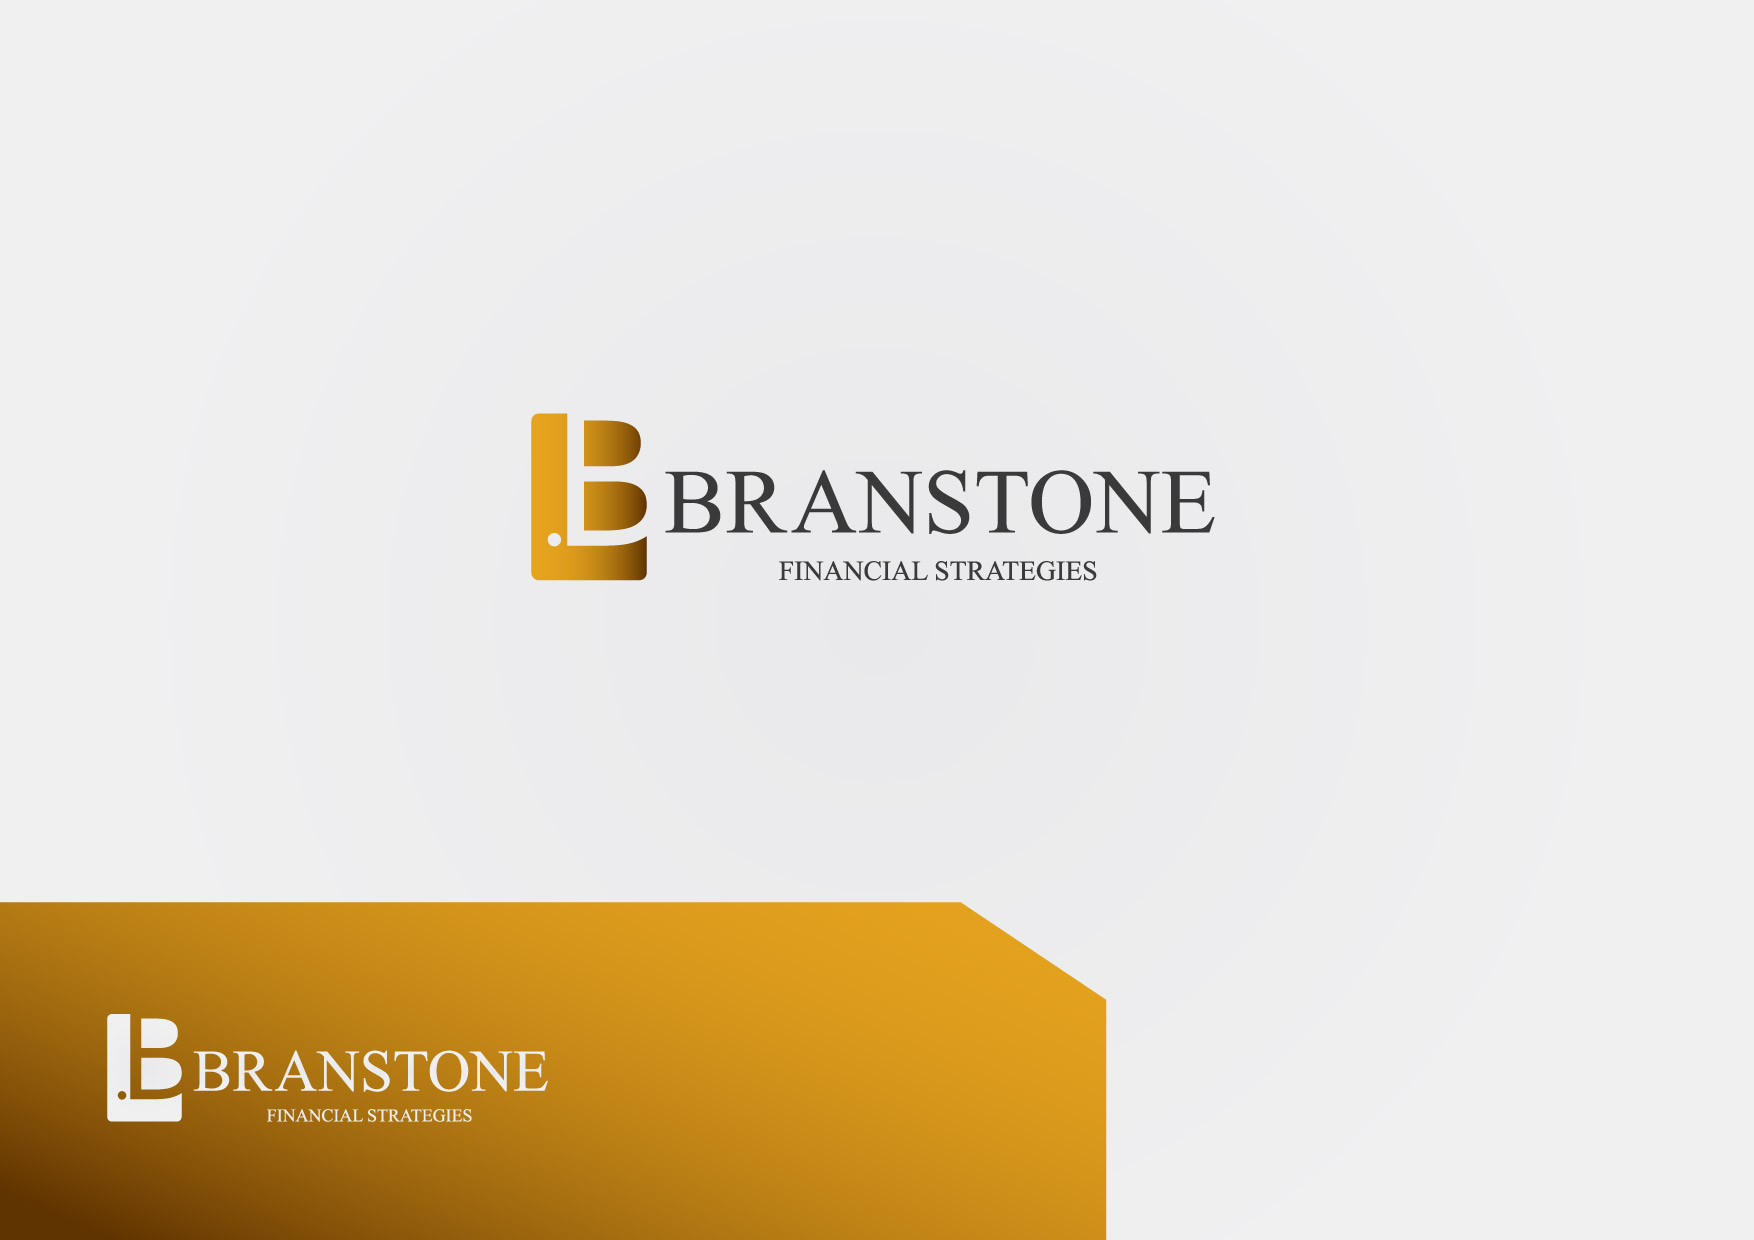 Logo Design by Osi Indra - Entry No. 37 in the Logo Design Contest Inspiring Logo Design for Branstone Financial Strategies.